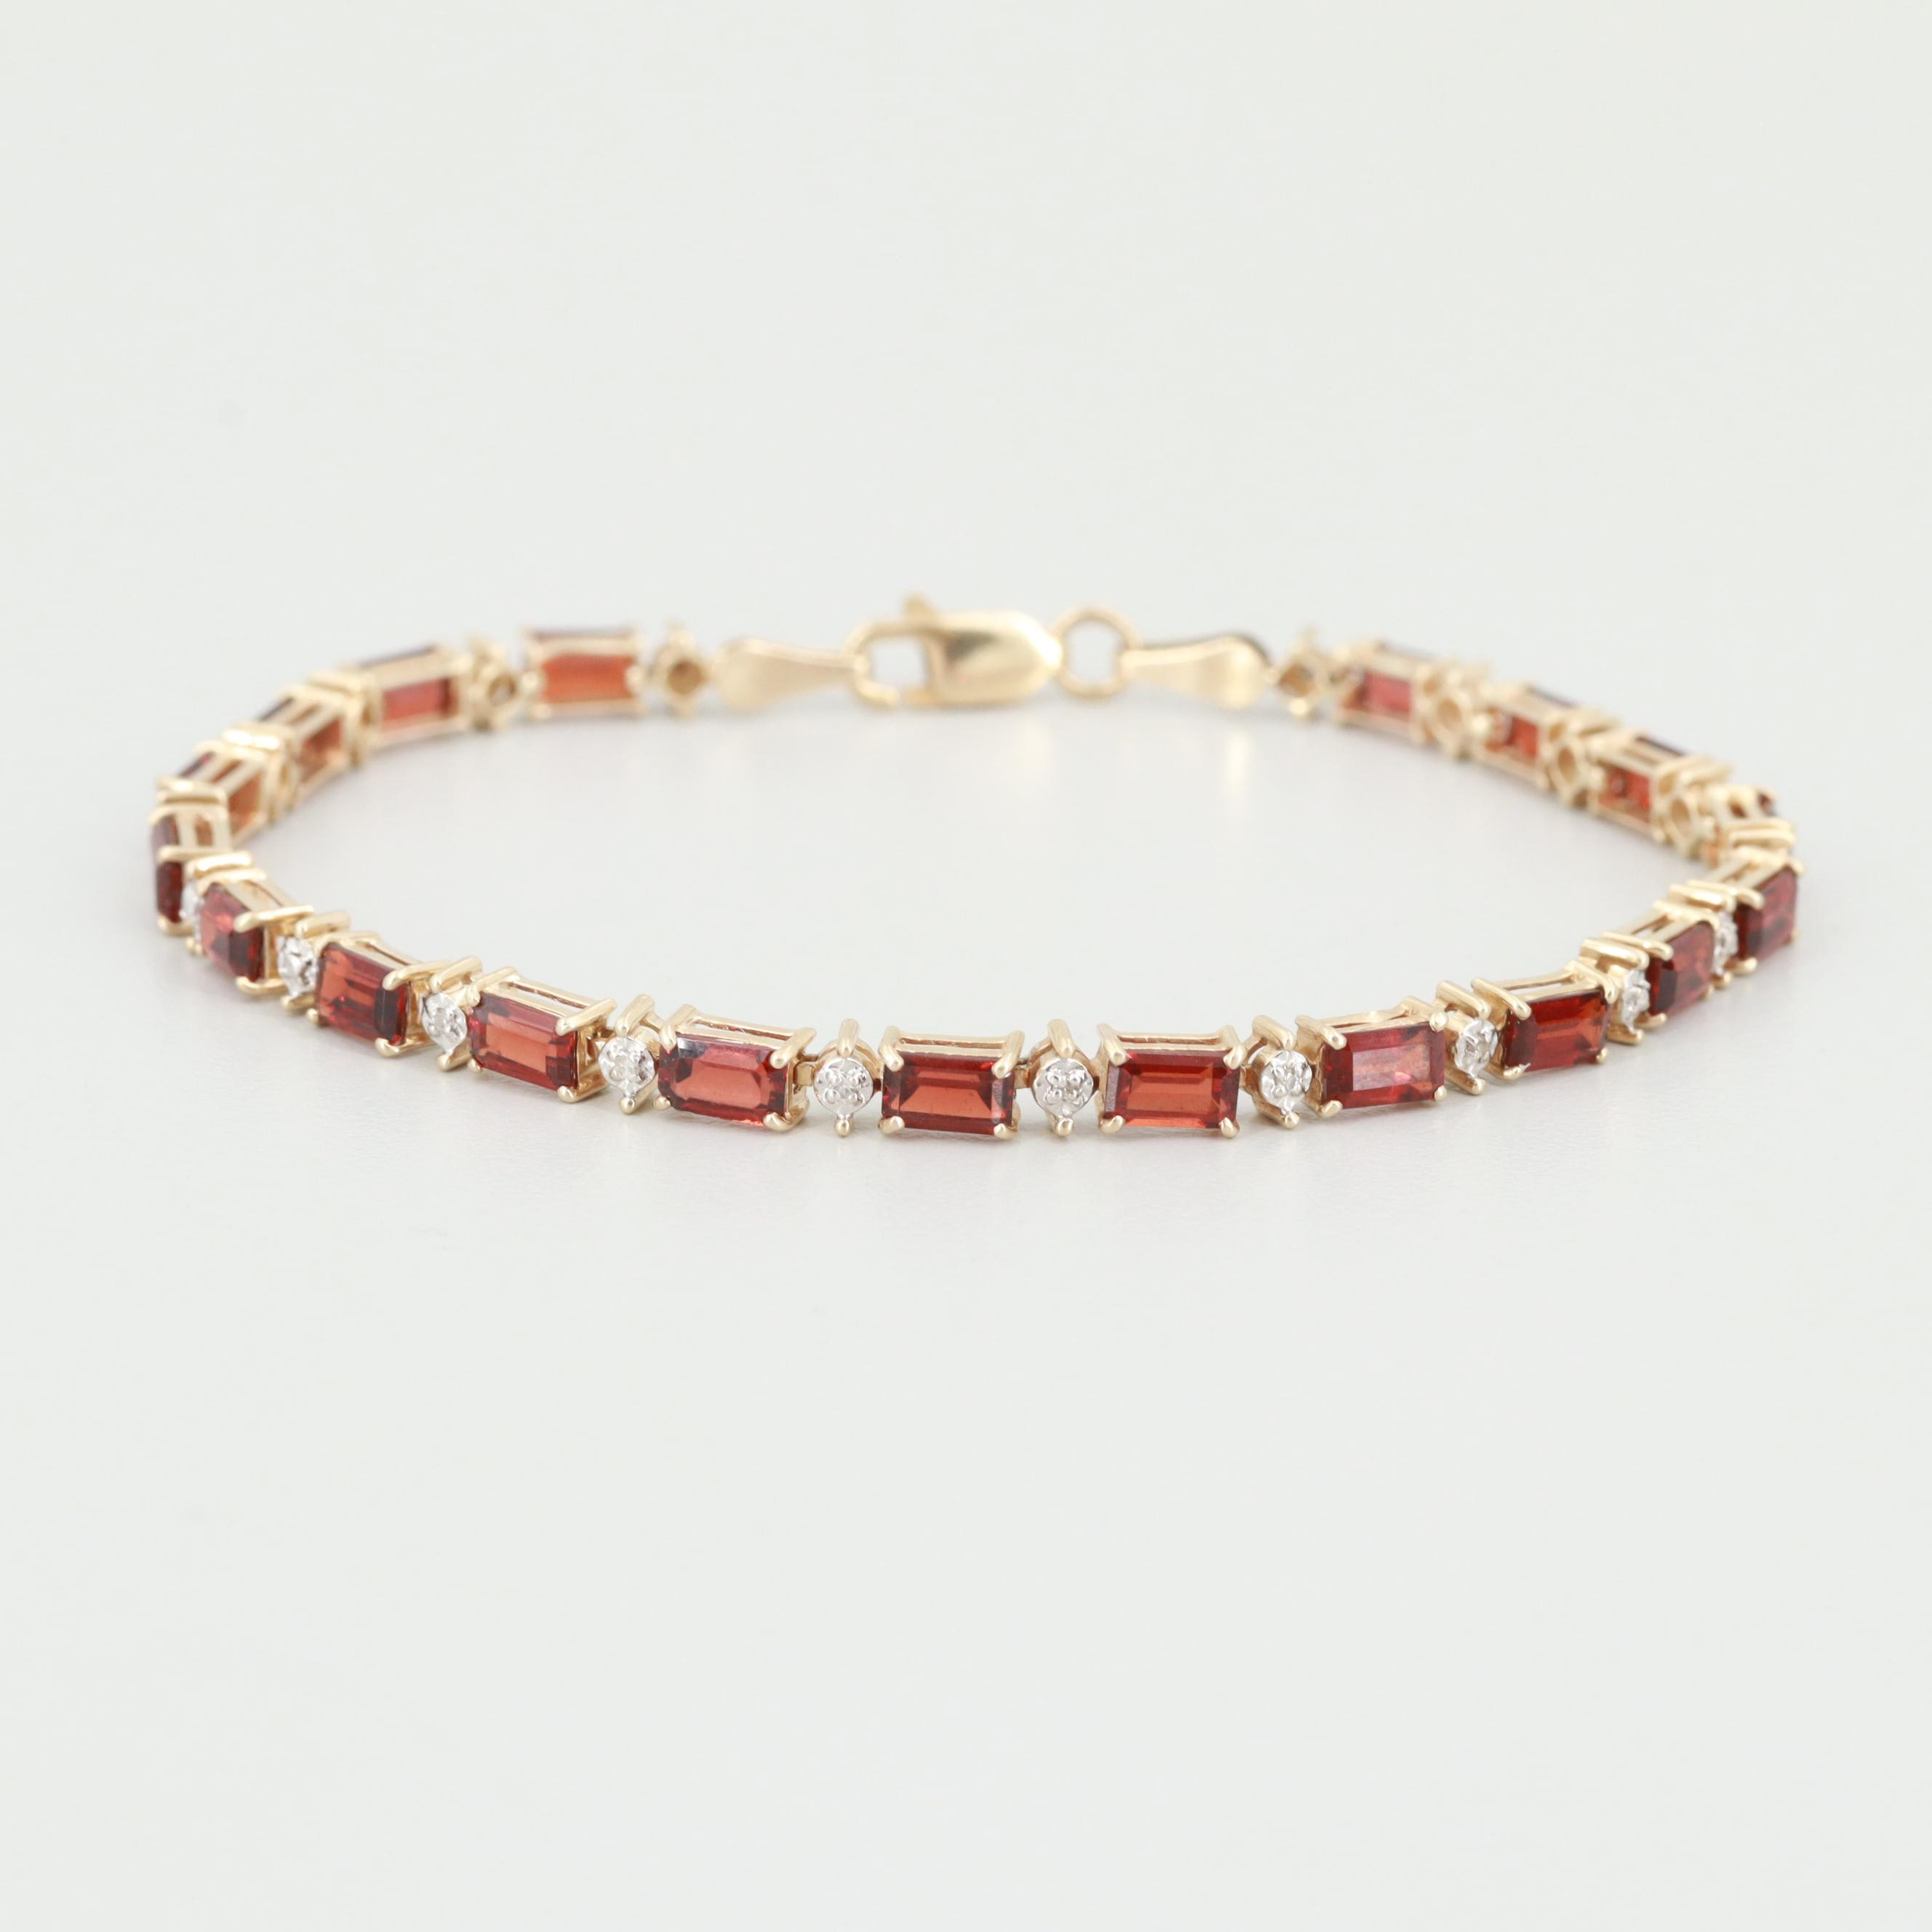 10K Yellow Gold Garnet and Diamond Bracelet